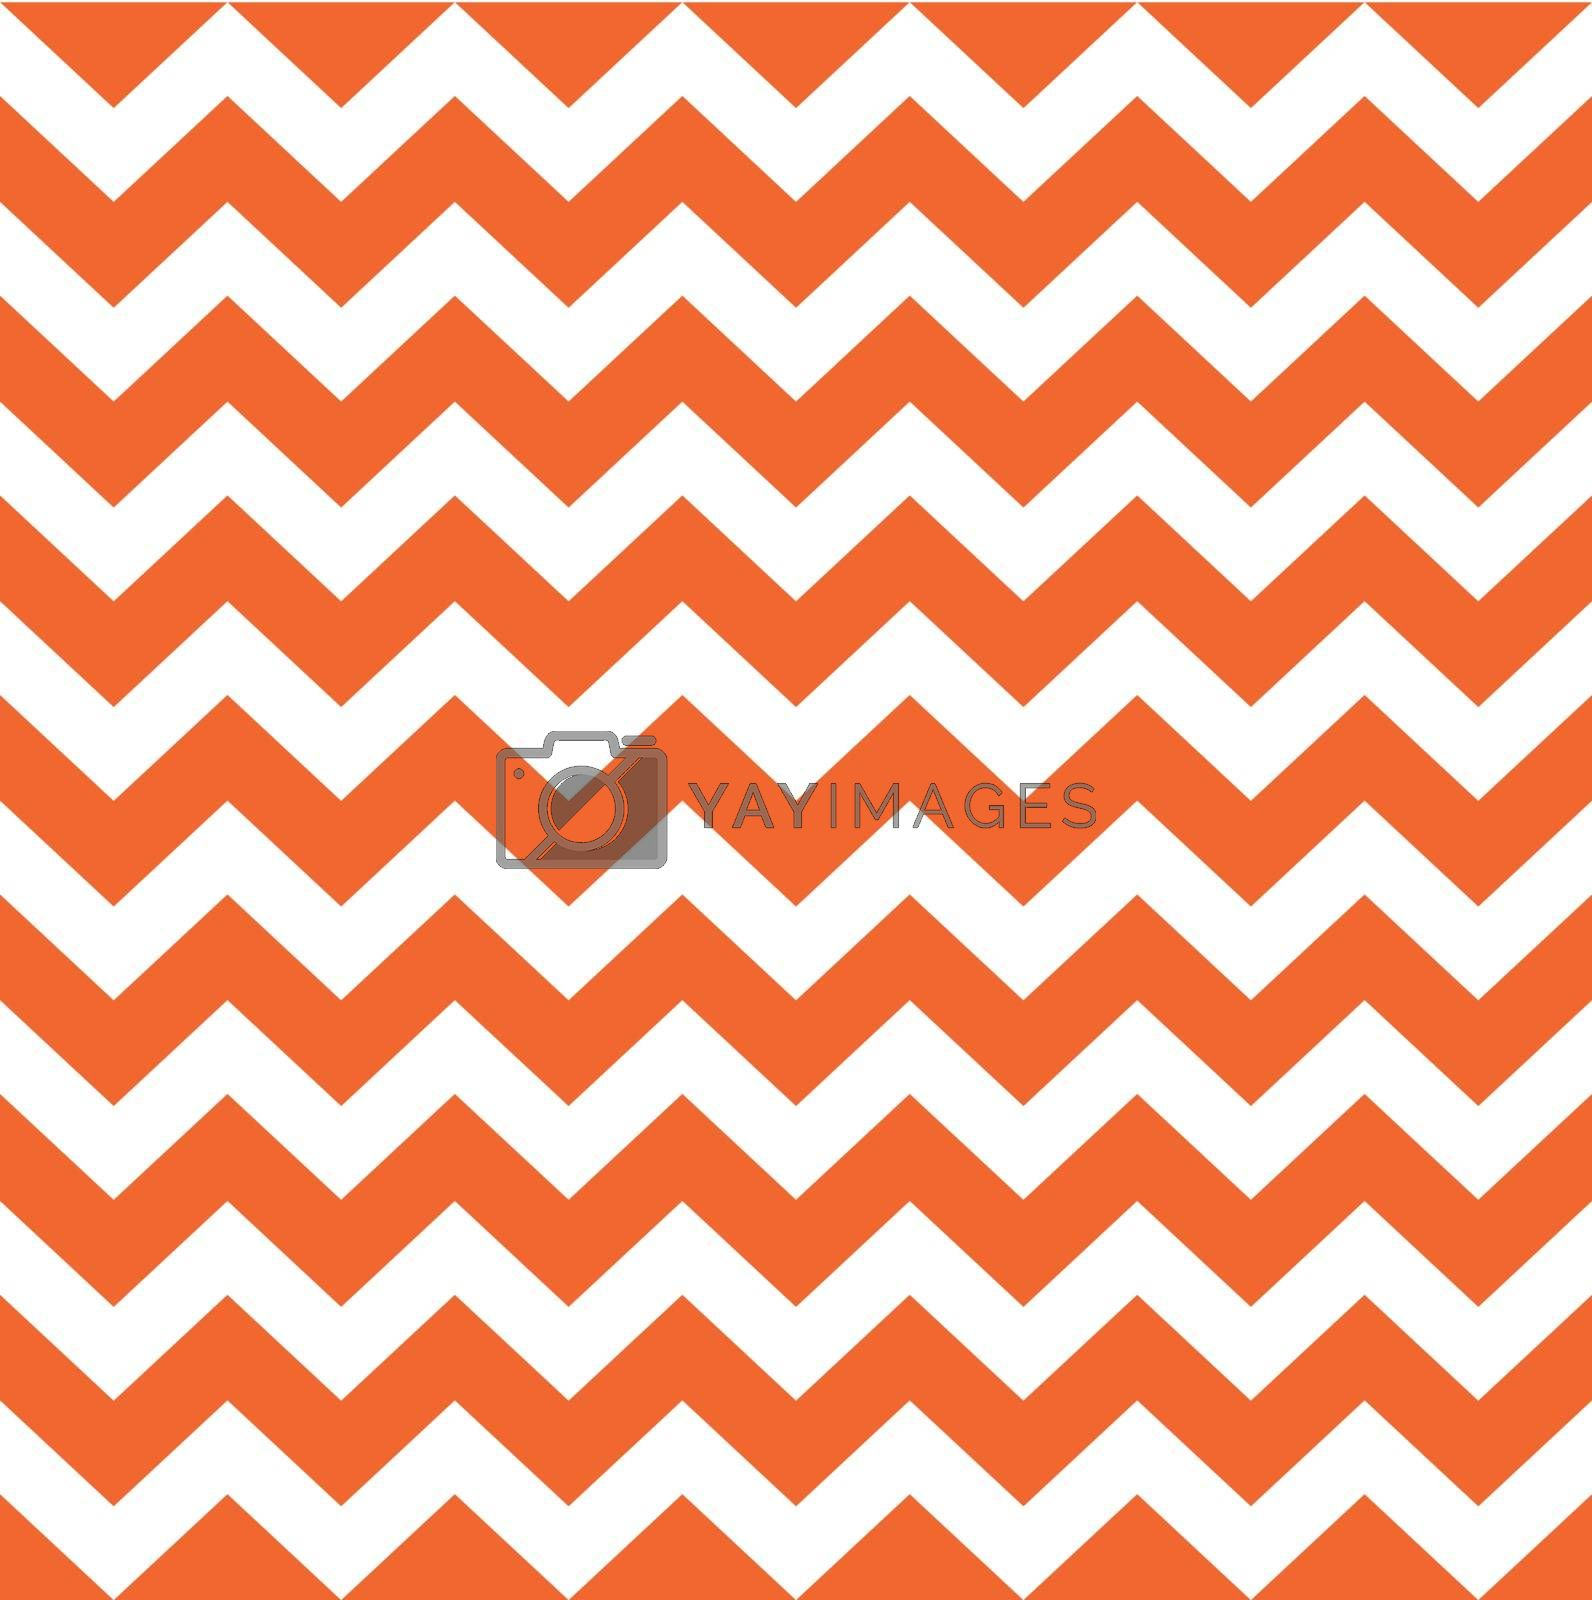 Chevron xmas seamless background - red and white. Vector